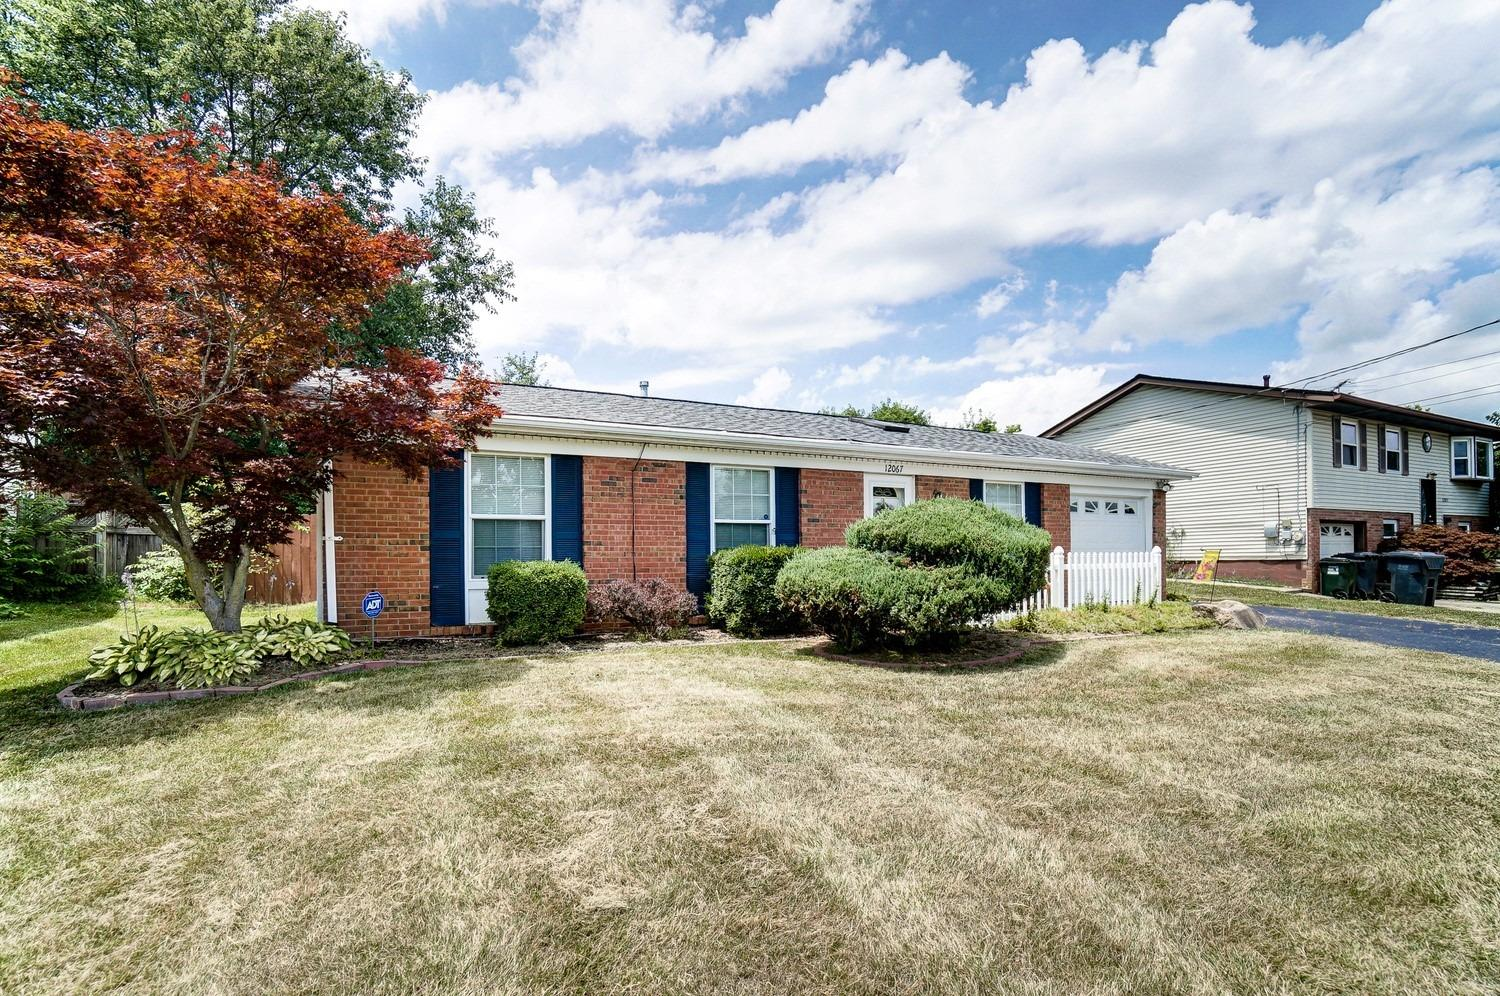 Photo 3 for 12067 Spalding Dr Colerain Twp.East, OH 45231